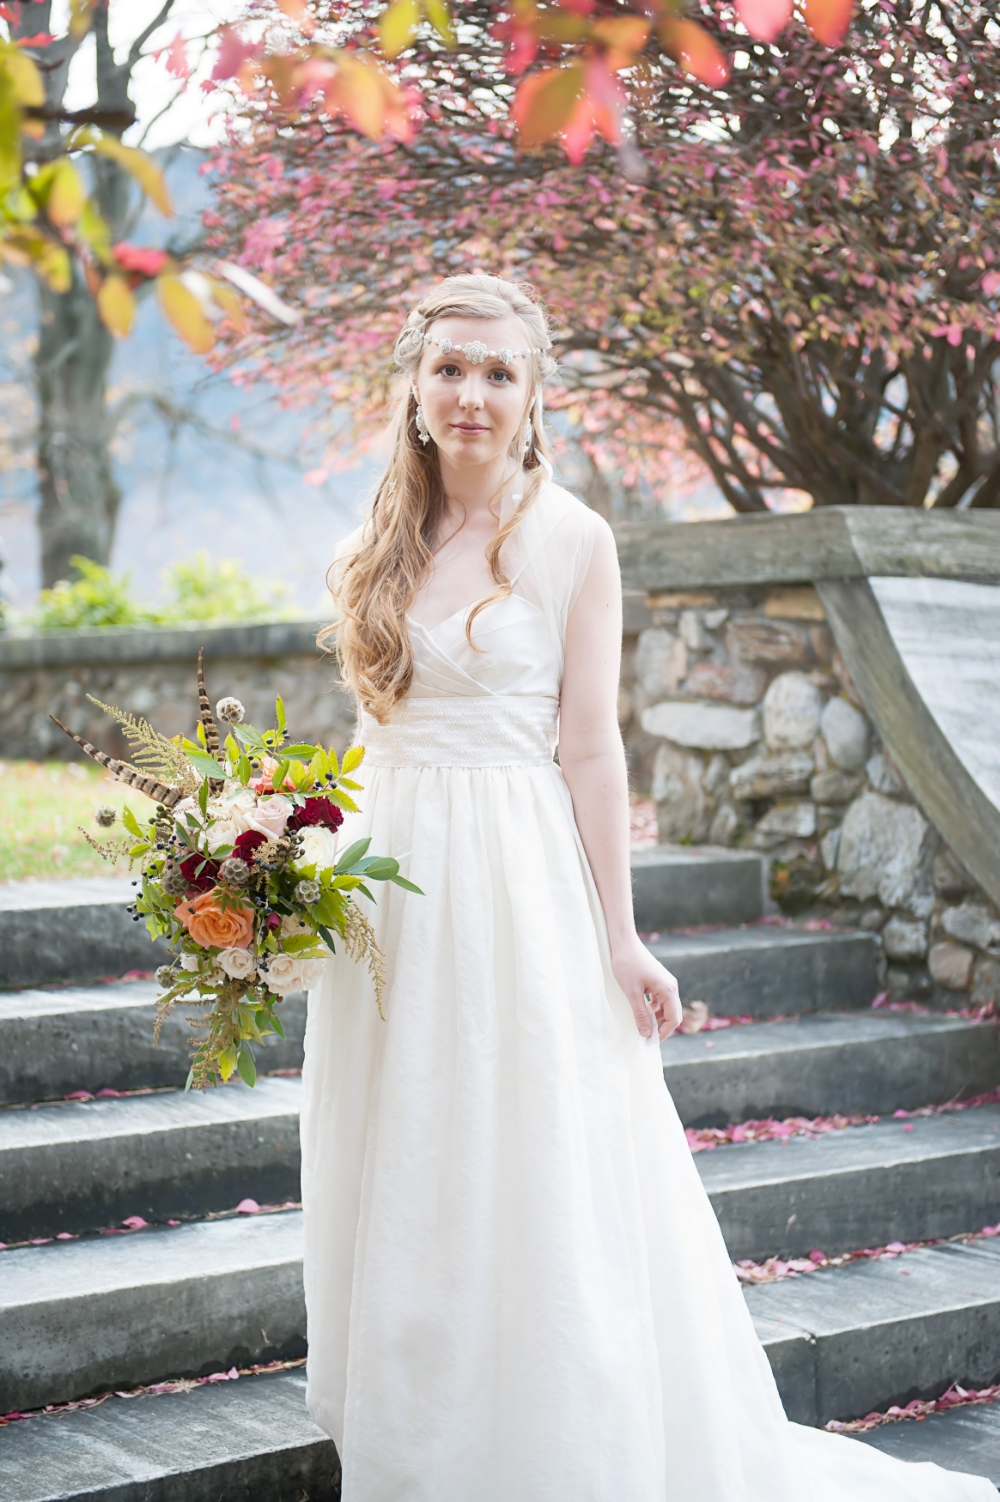 Photo: Carrie Ann Photography | Gown: Celia Grace | Hair & Makeup: Studio 210 Salon | Flowers: Nancy Bishop | Location: Wilburton Inn, Manchester VT